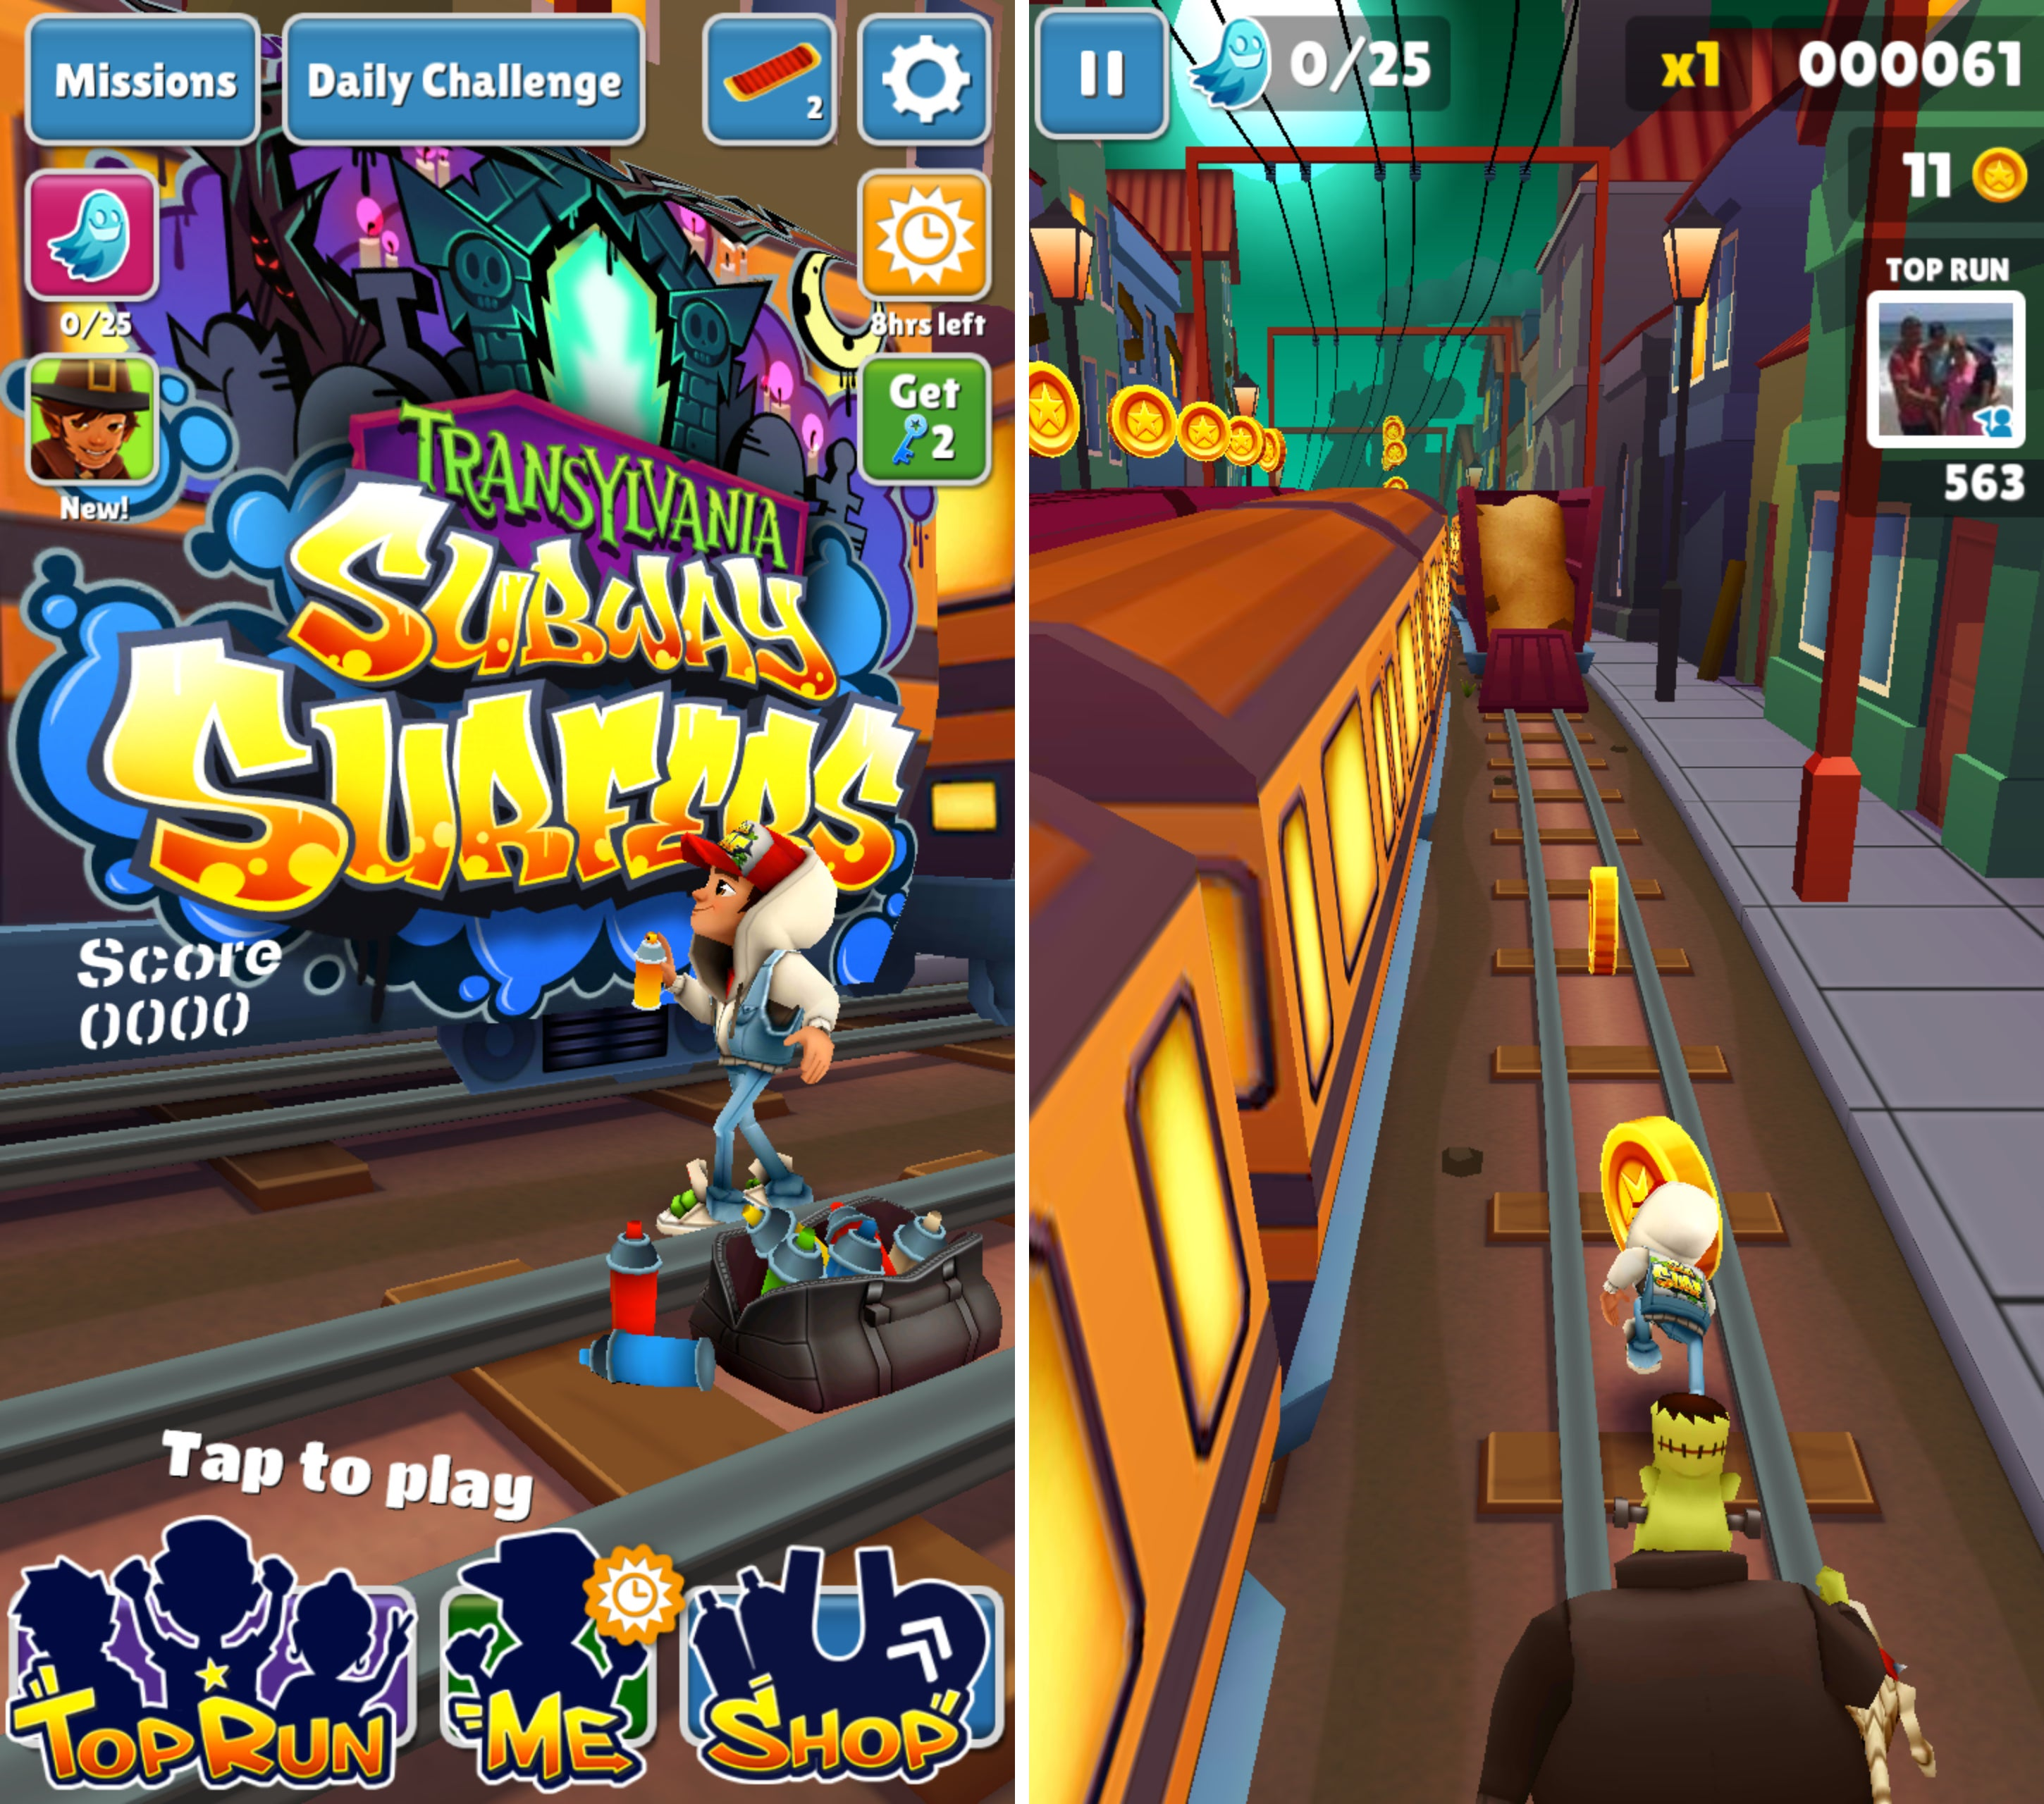 15 Spooky, Scary Halloween Games For Your Android Phone